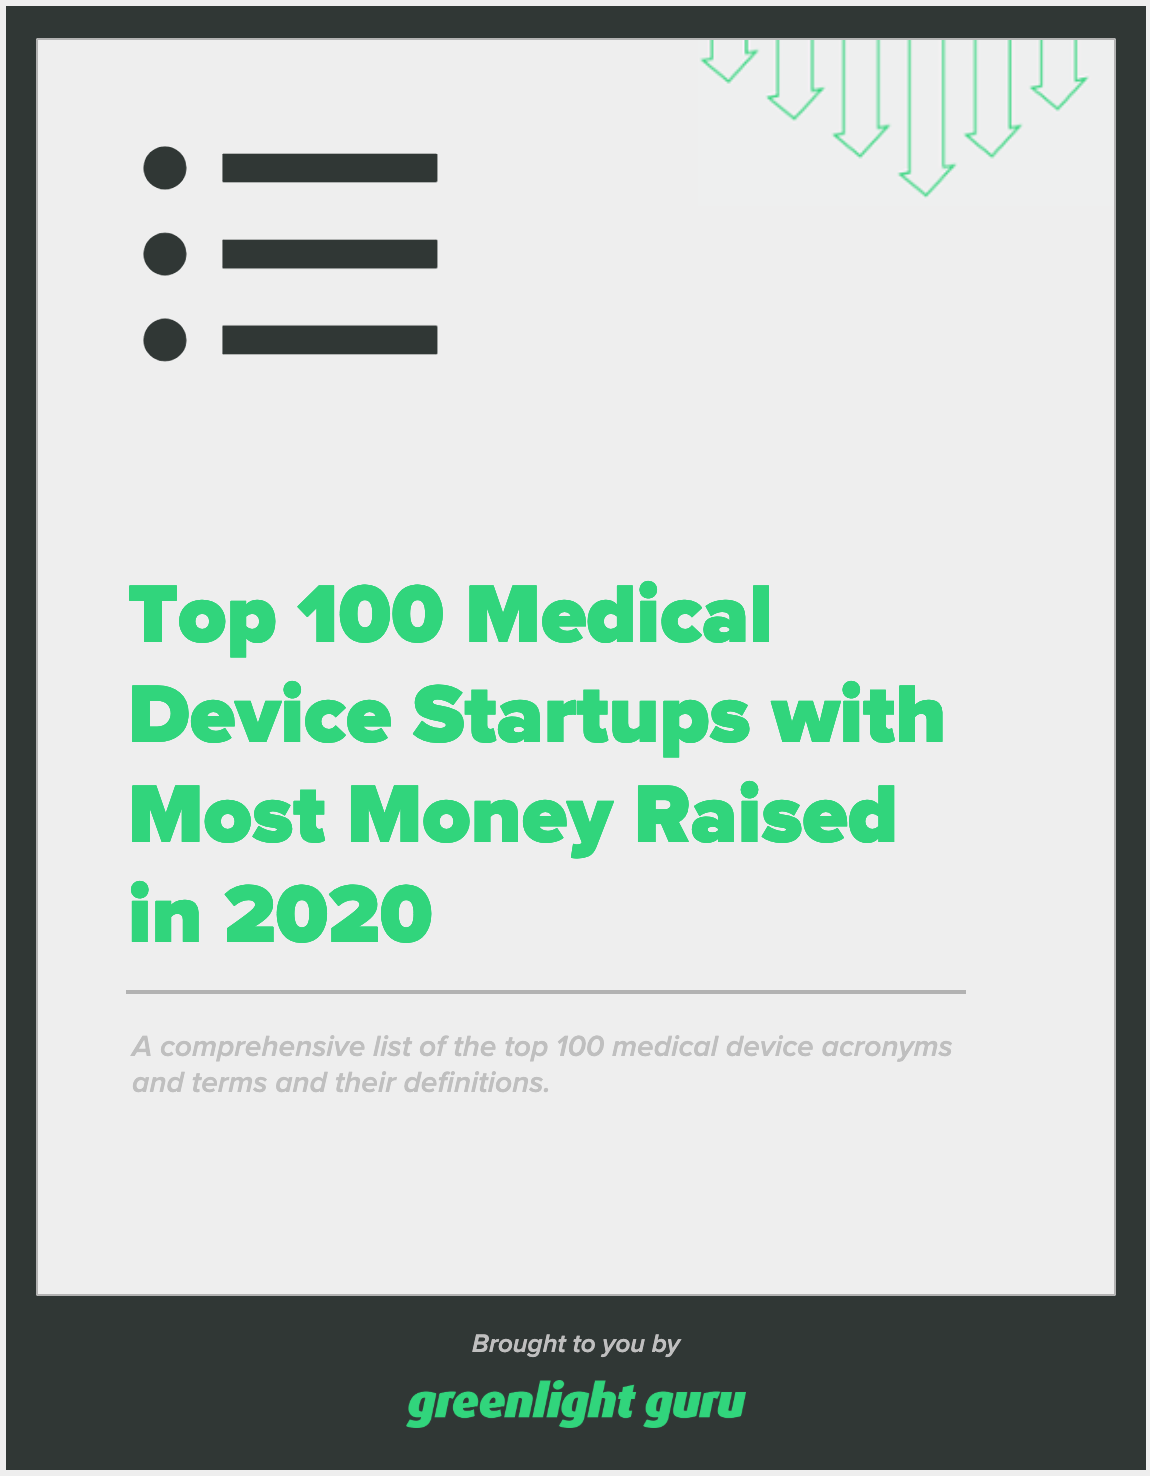 Top 100 Medical Device Startups with Most Money Raised in 2020 - slide-in cover